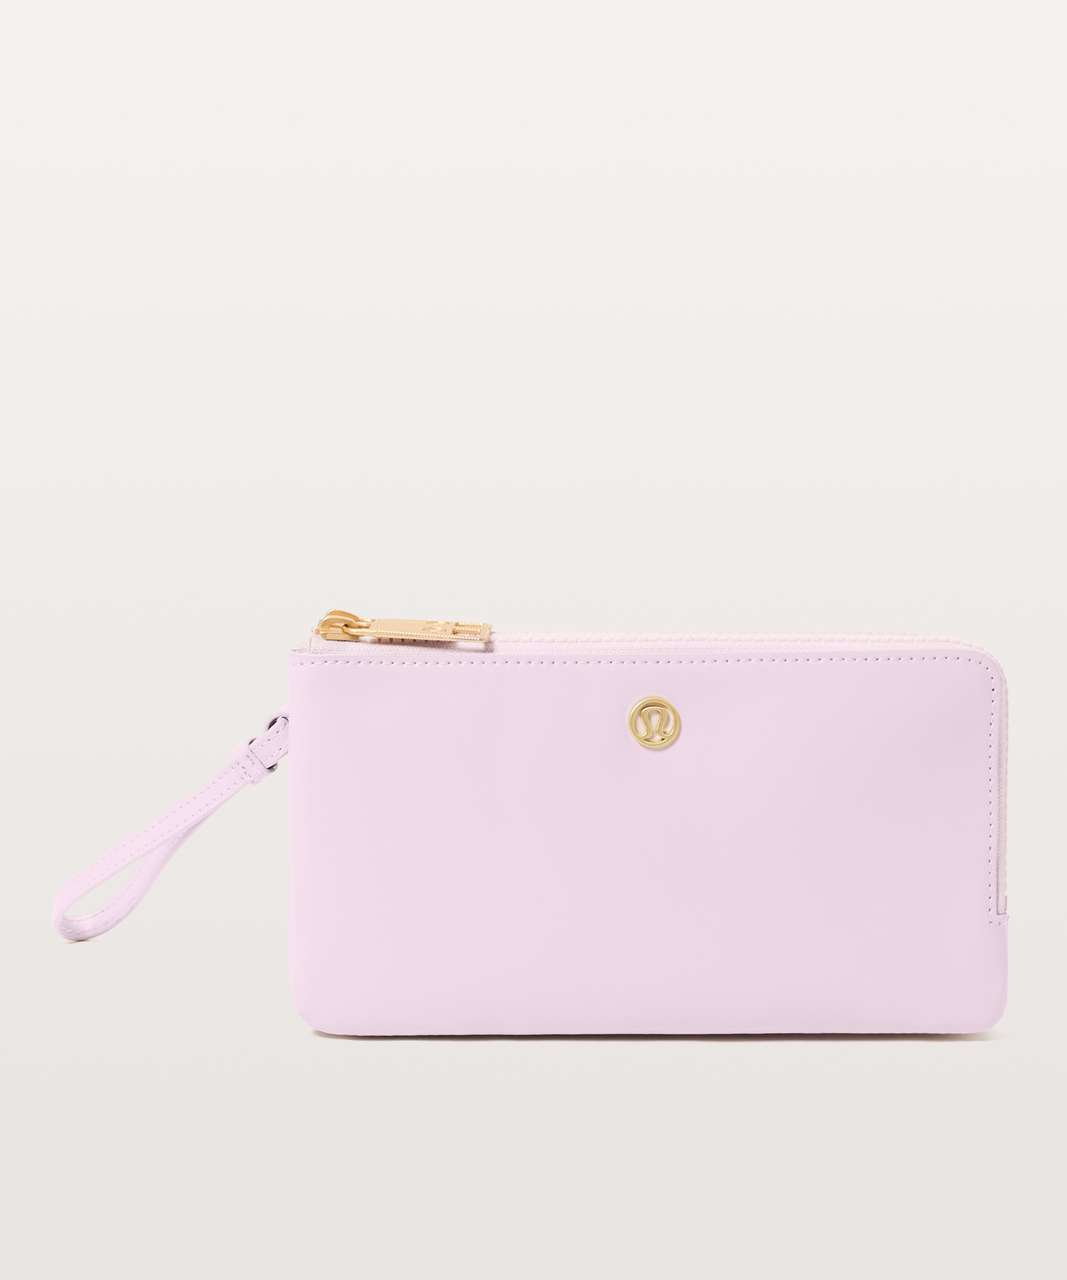 Lululemon Double Up Pouch - Misty Pink (First Release)